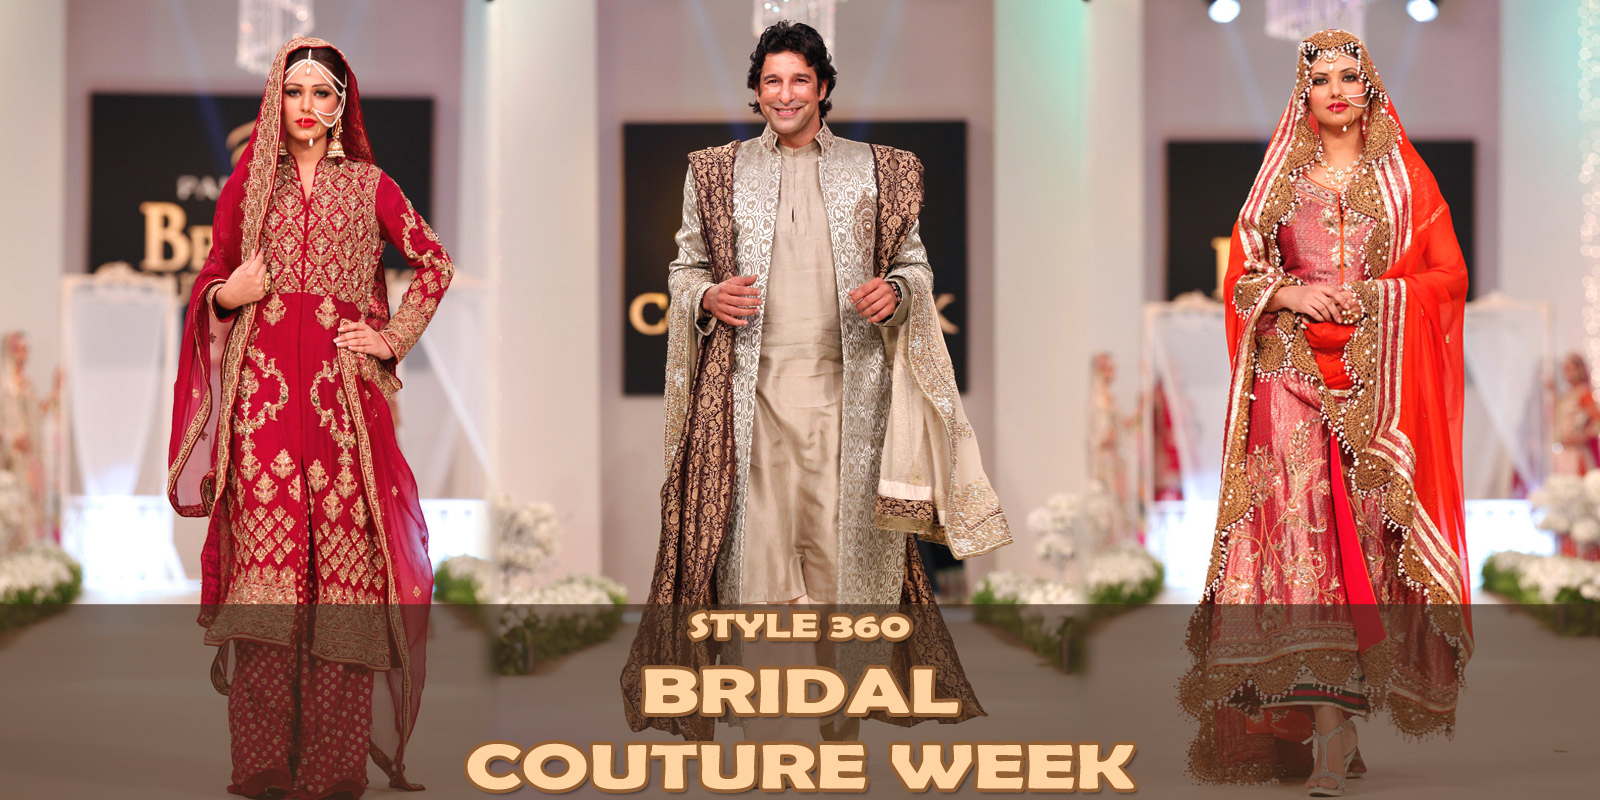 Pantene Bridal Couture Week 2015 Style 360 Images Galleries With A Bite